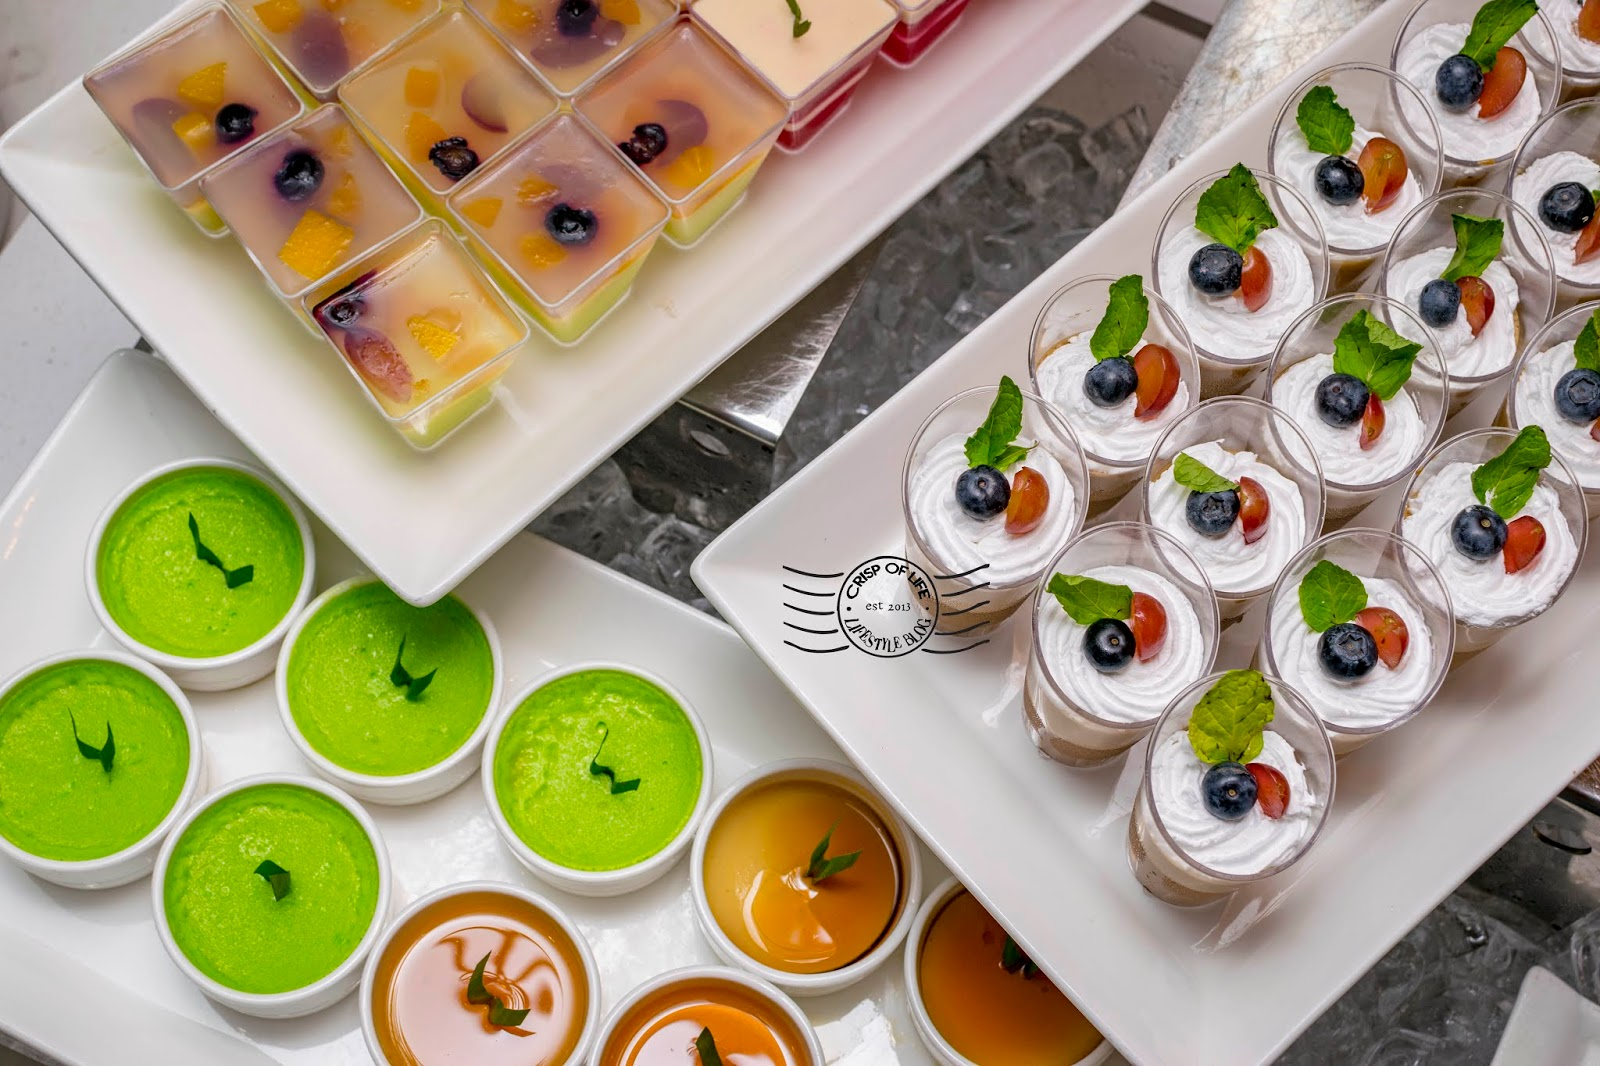 LET's GET FAT! Fat-bulous Buffet Dinner for RM 68 nett @ Vouk Hotel Suites Penang